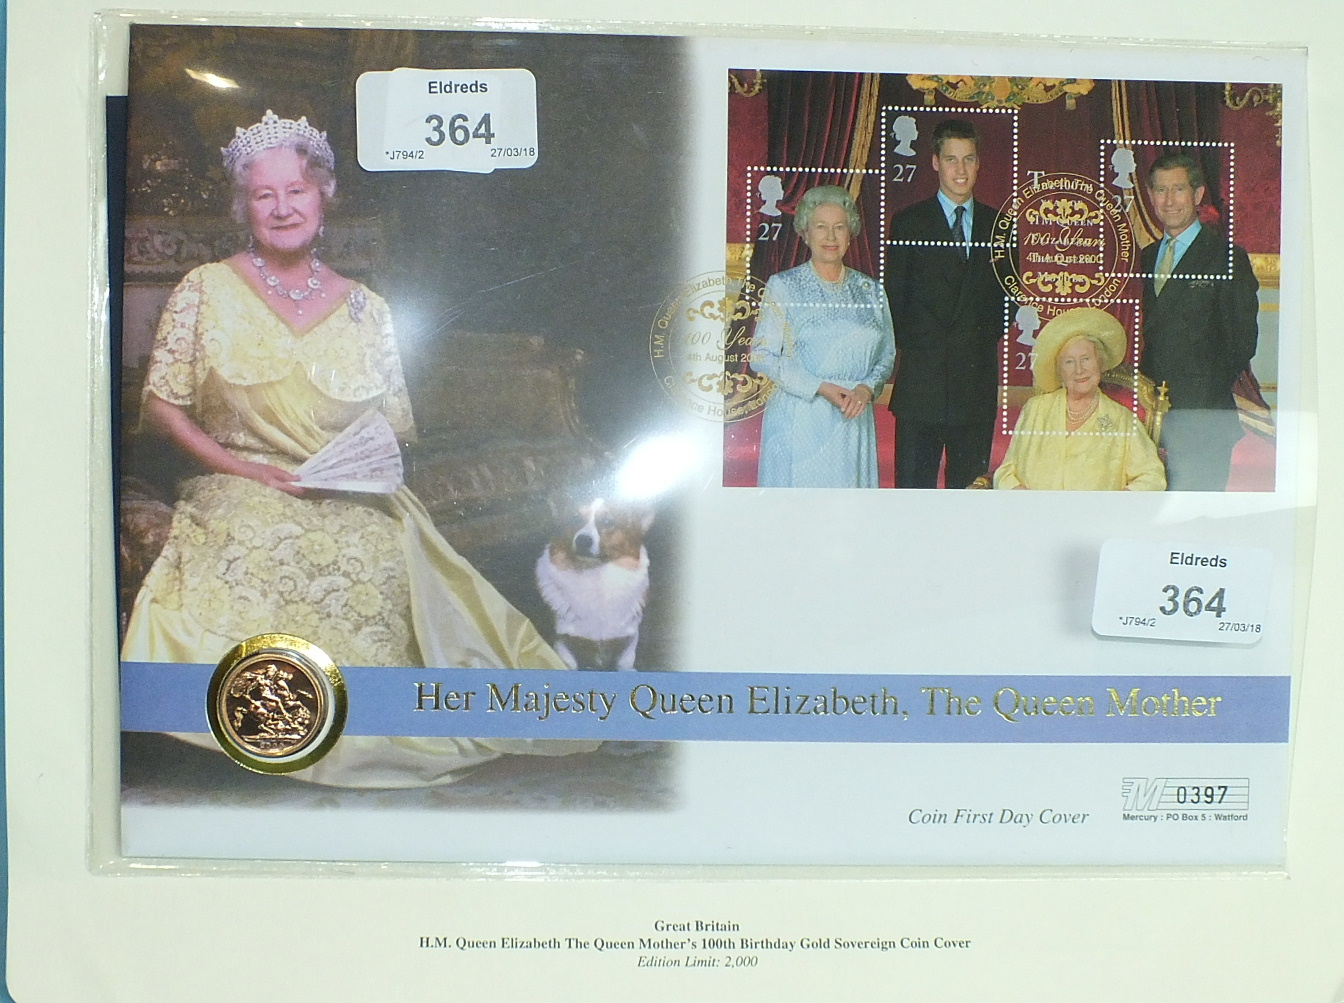 Lot 364 - An H M Queen Elizabeth The Queen Mother's 100th Birthday Gold Sovereign Coin Cover containing an